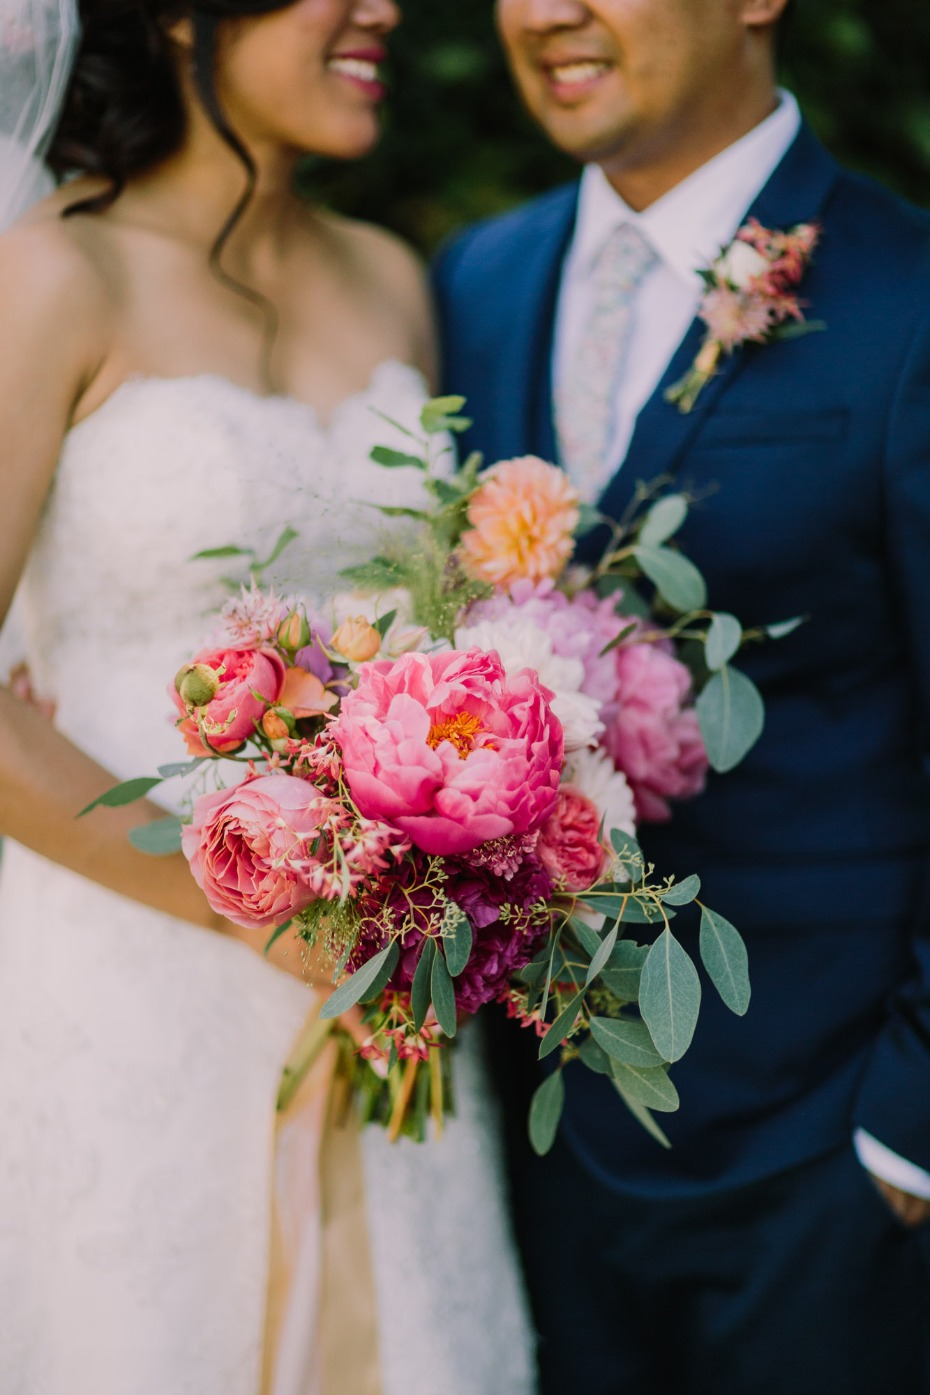 Colorful bouquet for the bride